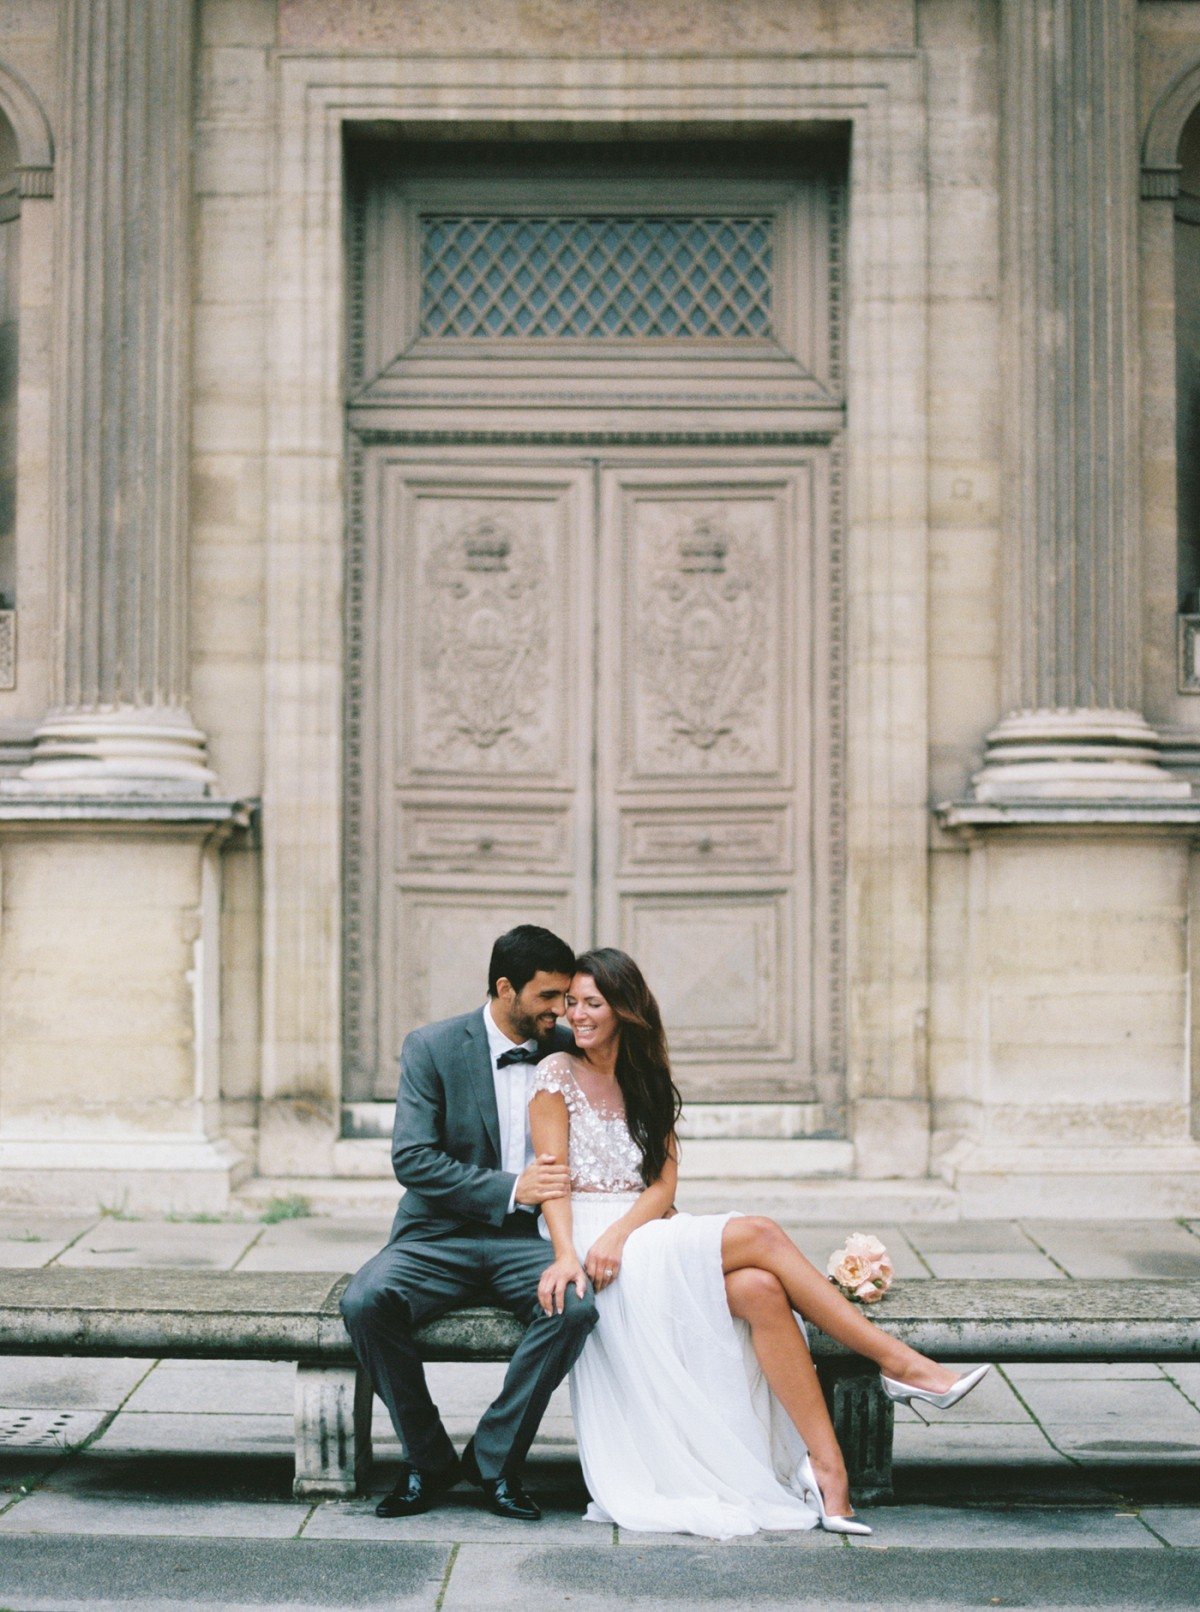 Chloe and Jean's Paris Elopement